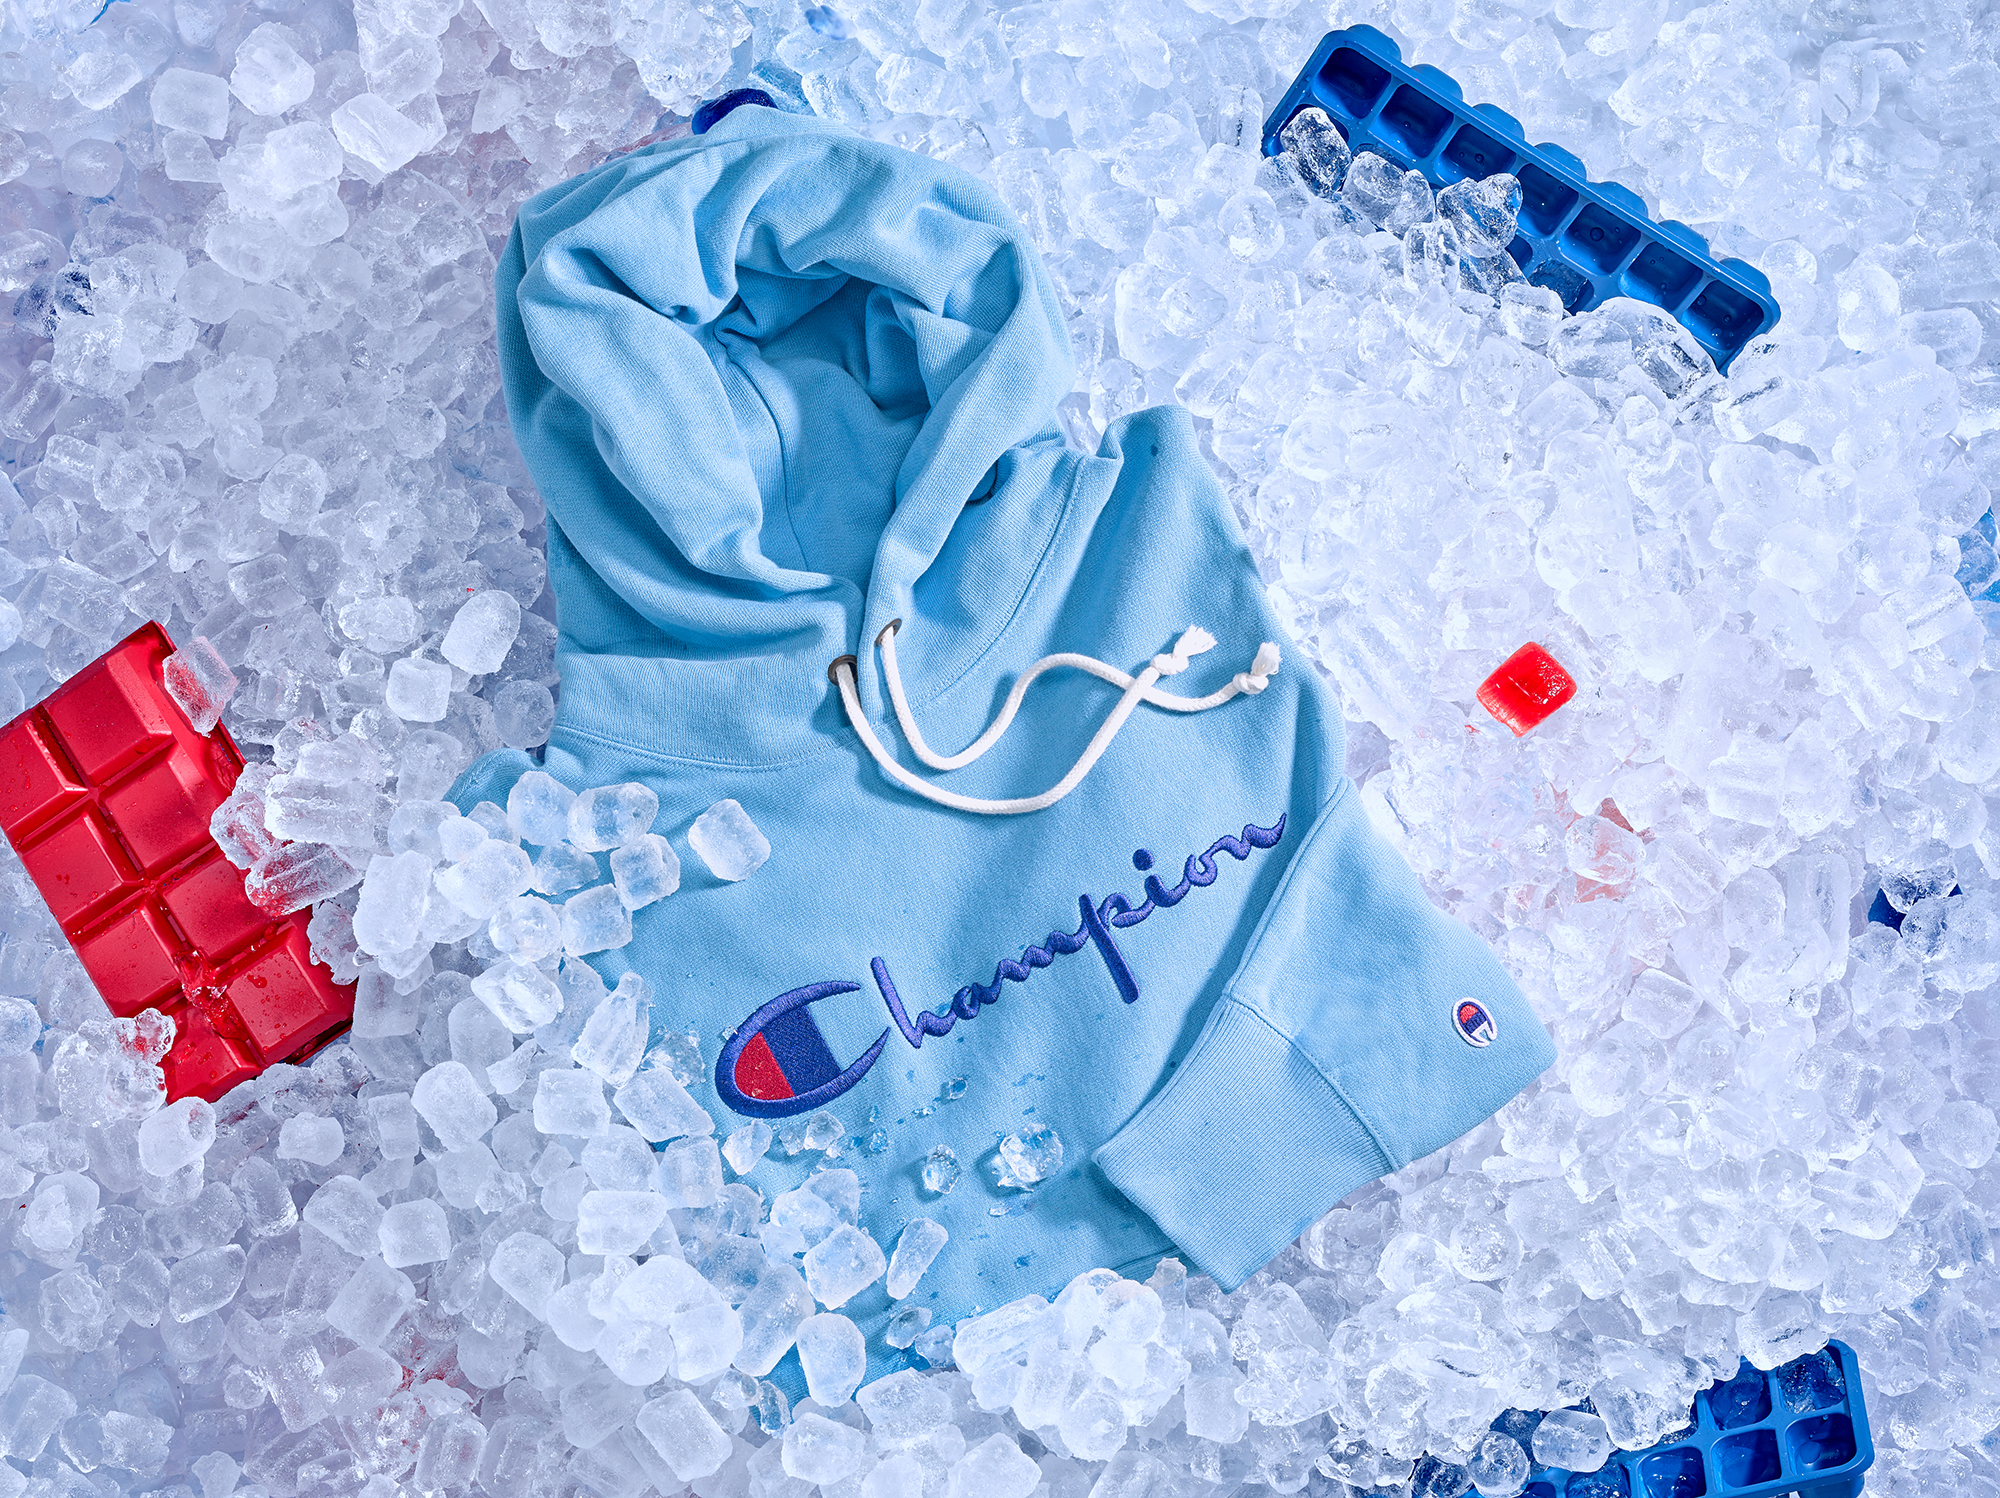 still life fashion accessories styled with ice cubes and ice trays, a blue hooded jumper partly submerged into the ice, product photography from london advertising photographer chris howlett